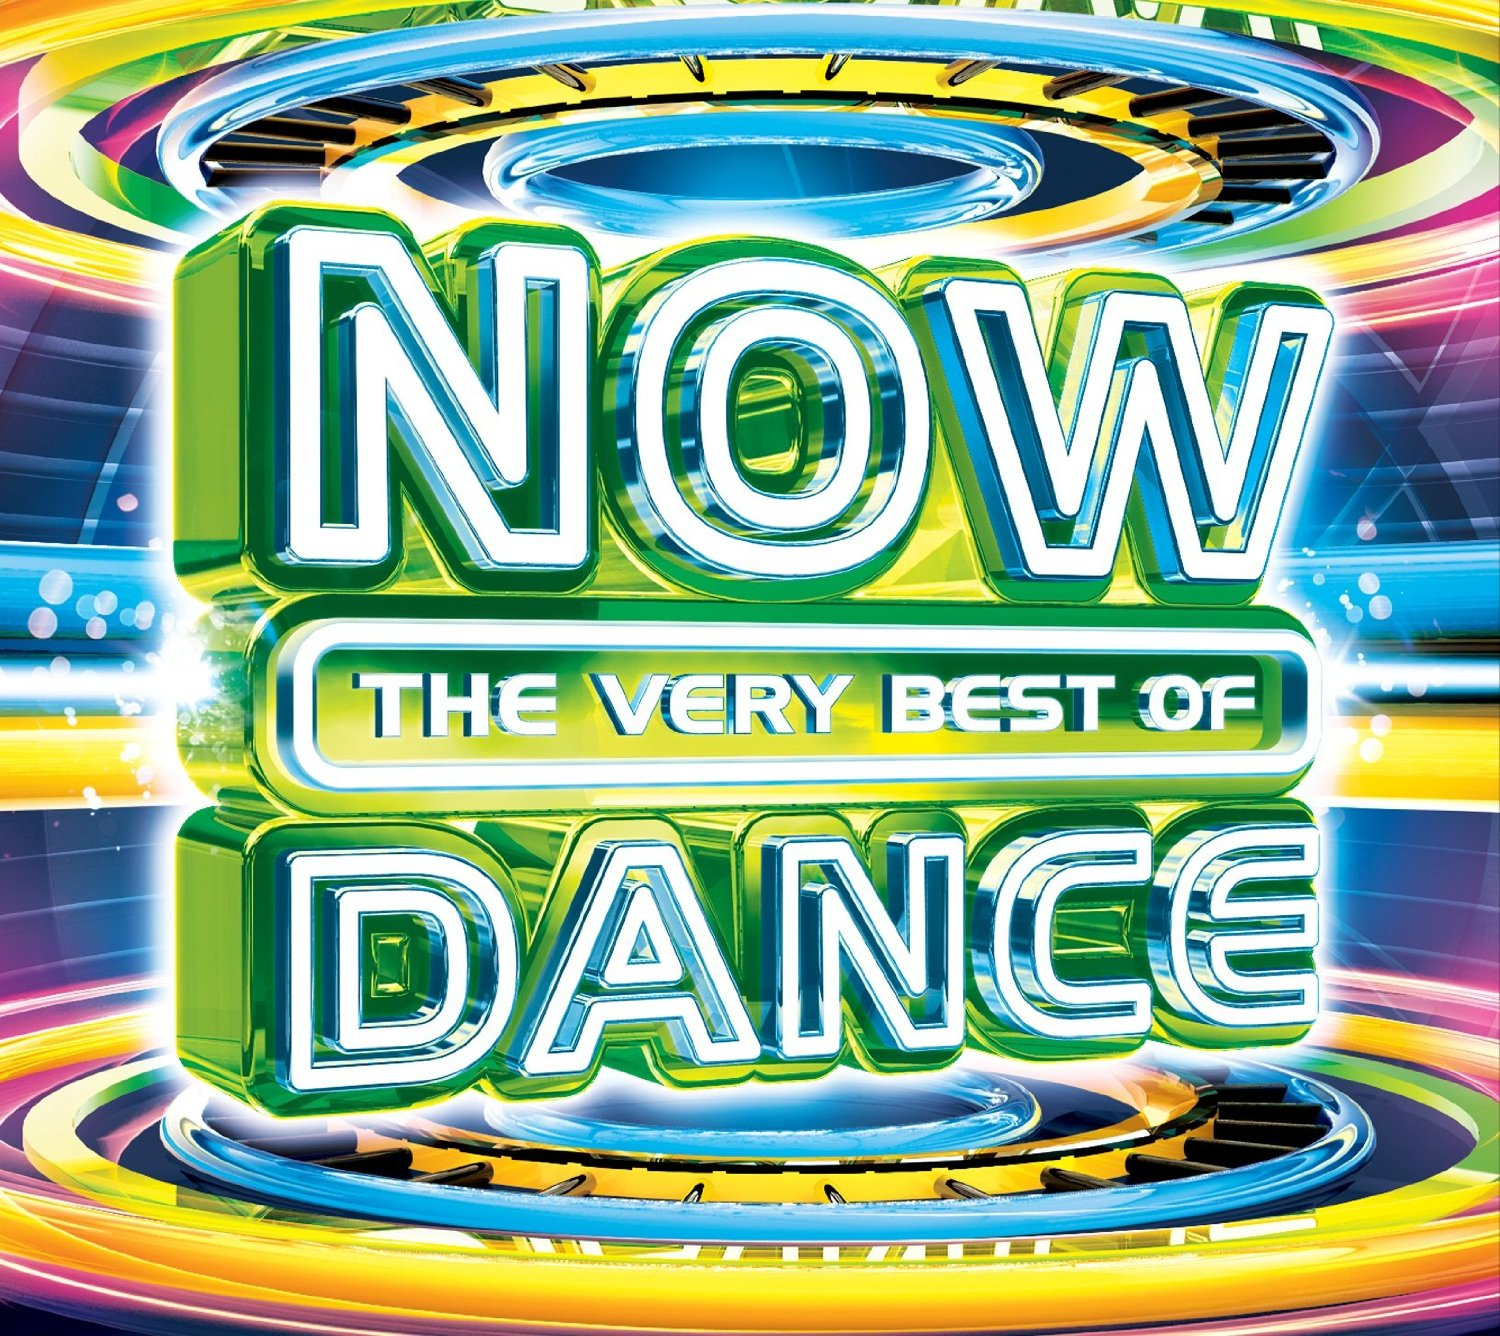 The Best Of NOW That's What I Call Dance